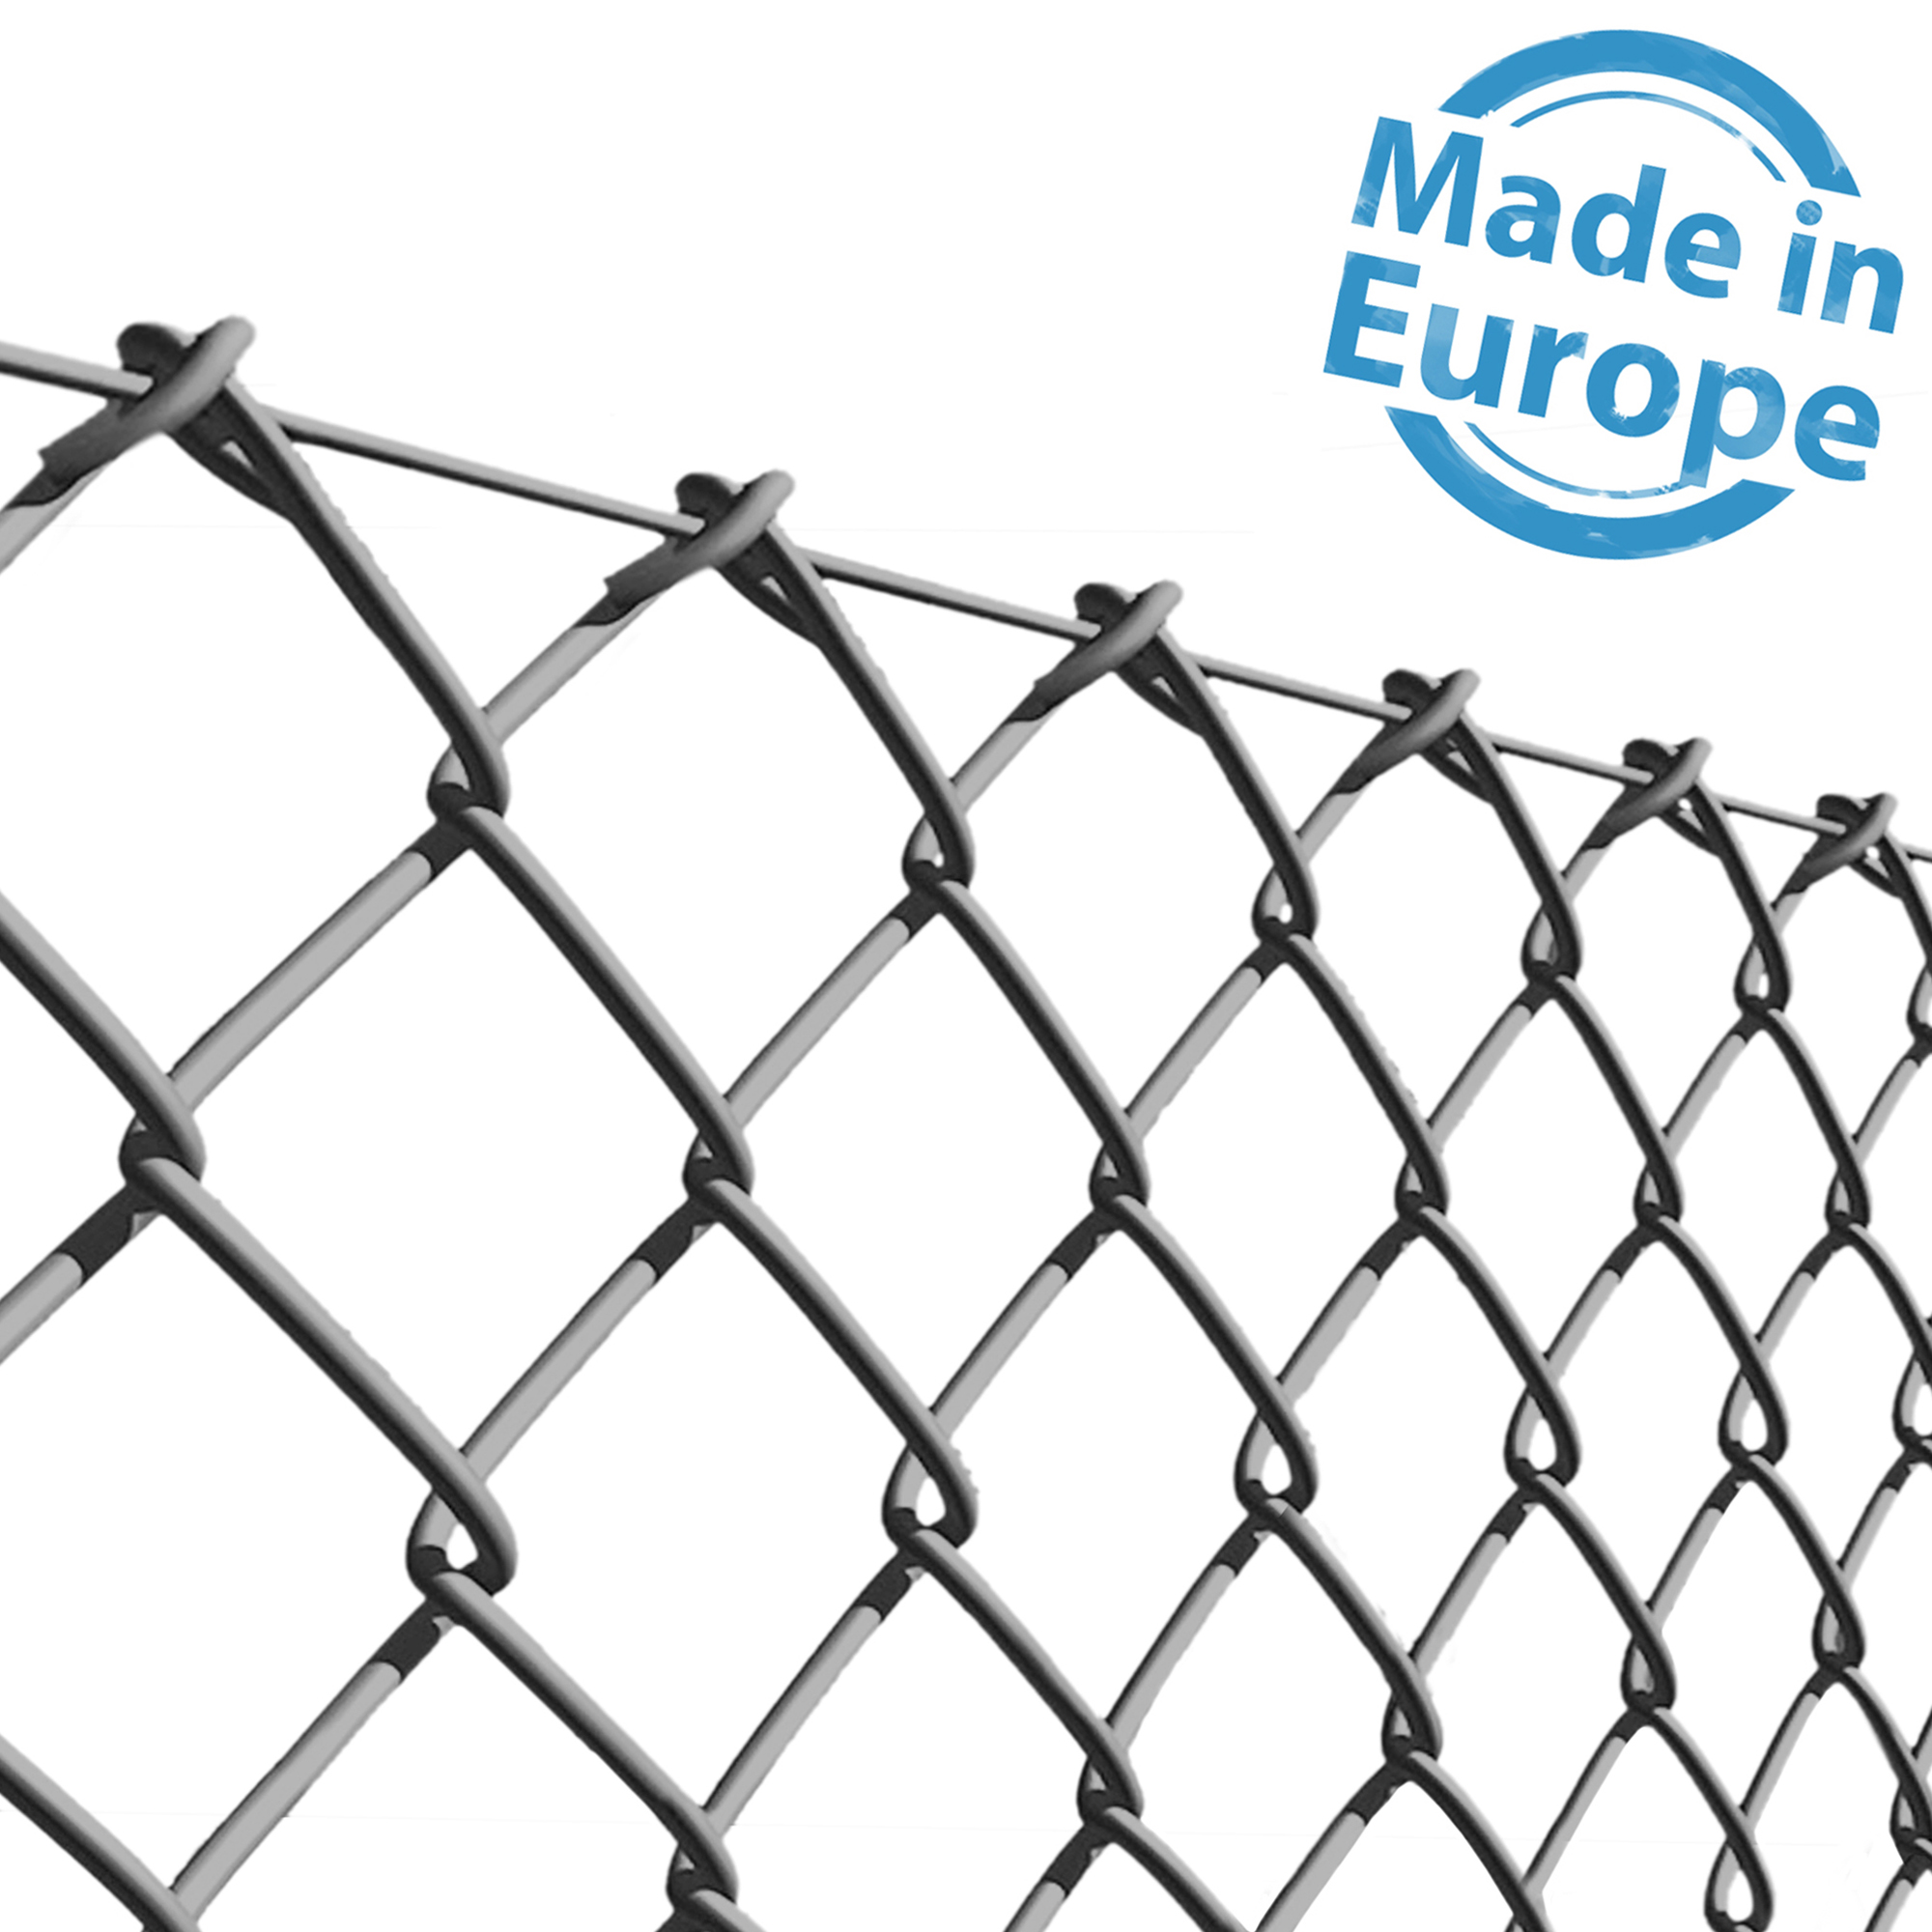 galvanized-steel-chain-link-fence